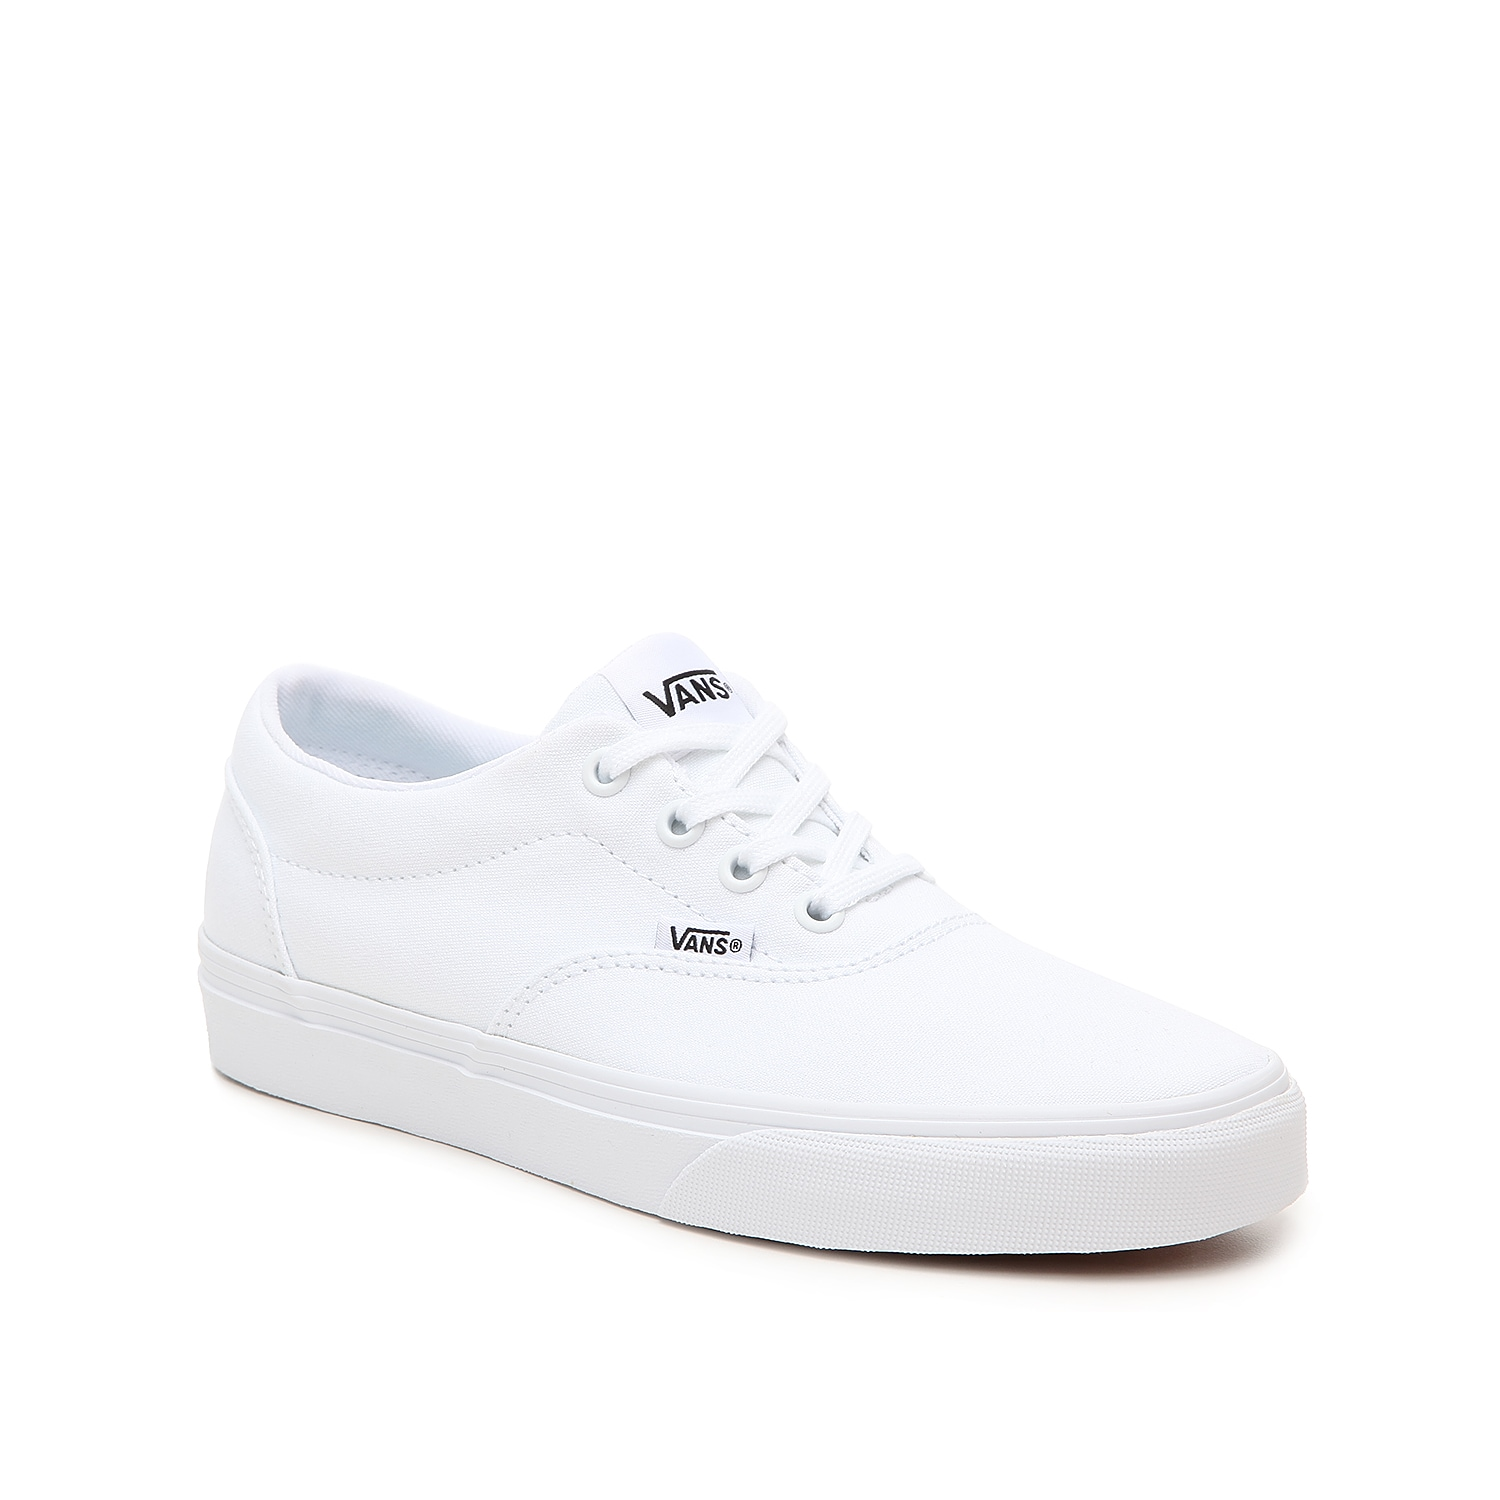 Add a bright white hue to your street style with the women\\\'s Doheny sneaker from Vans. Featuring a classic design and trendy vulcanized sole, this low-top will pair with anything from distressed jeans to skater skirts.